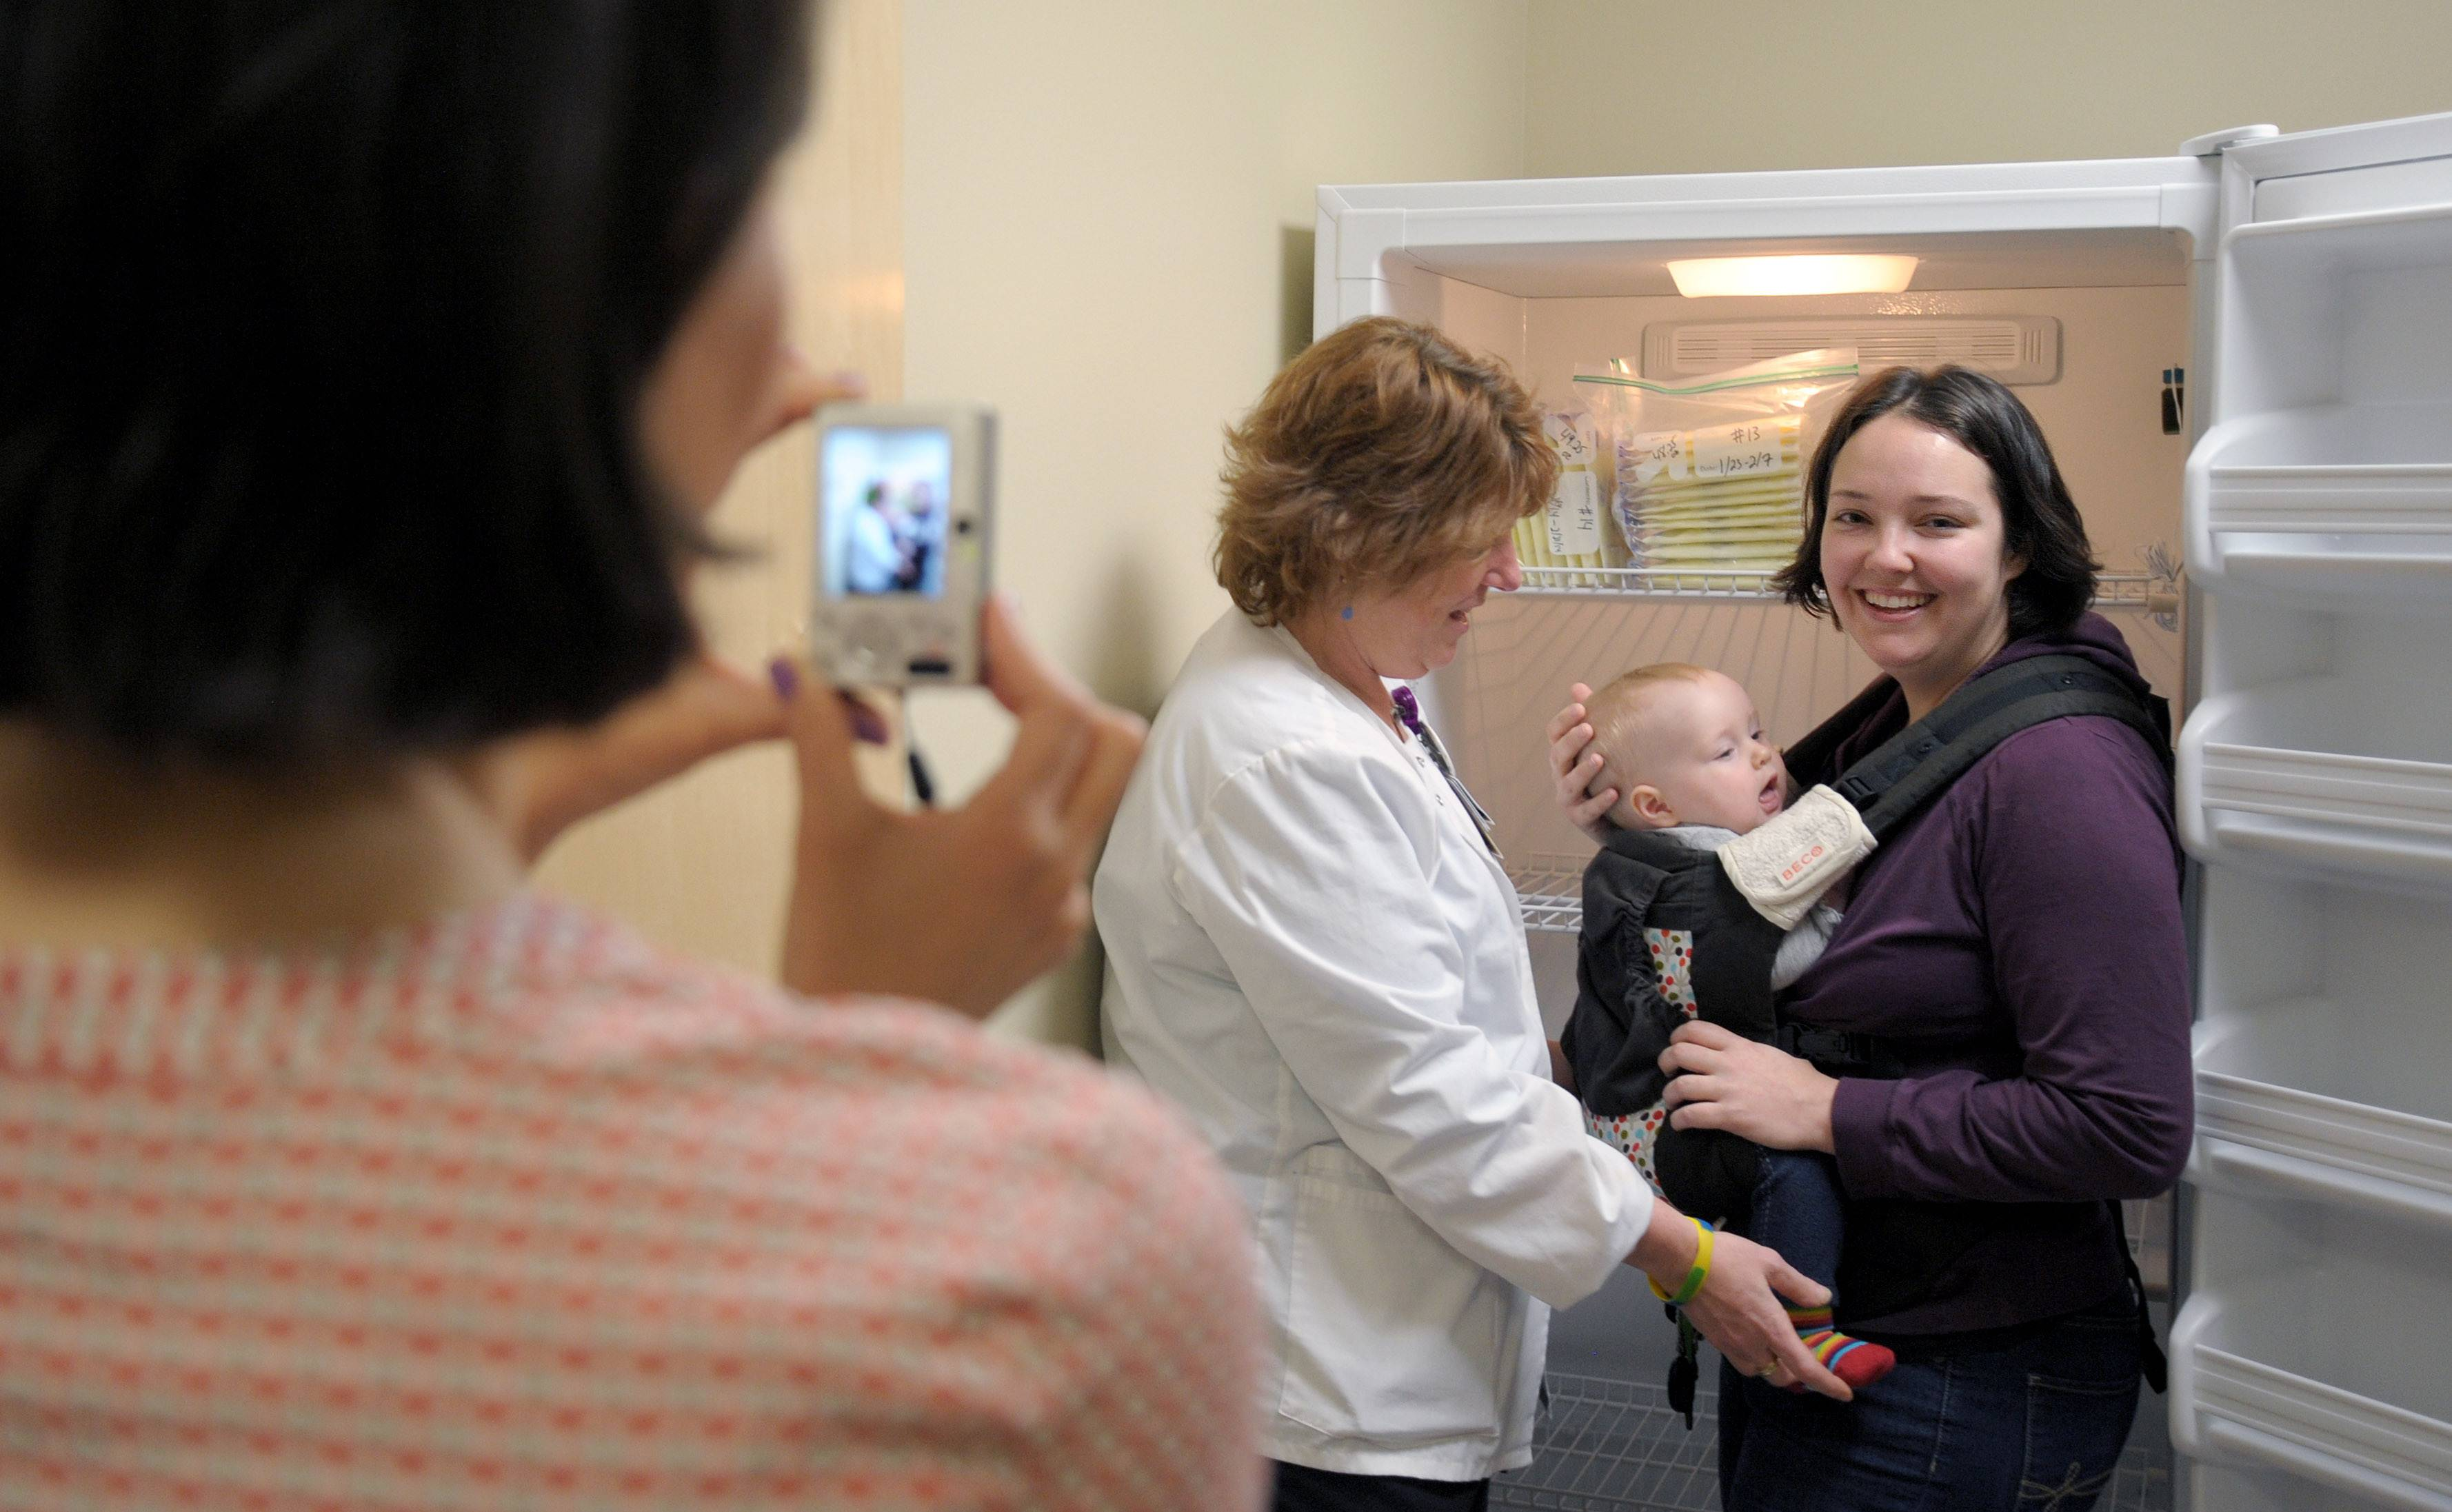 Holding her 8-month-old daughter, Lillian, Susan Urbanski of Niles drops off the first deposit of breast milk to nurse/lactation specialist Gina Juliano at the new breast milk depot at Advocate Sherman Hospital in Elgin. Jen Anderson, executive director of Mothers' Milk Bank of the Western Great Lakes, takes a photograph.